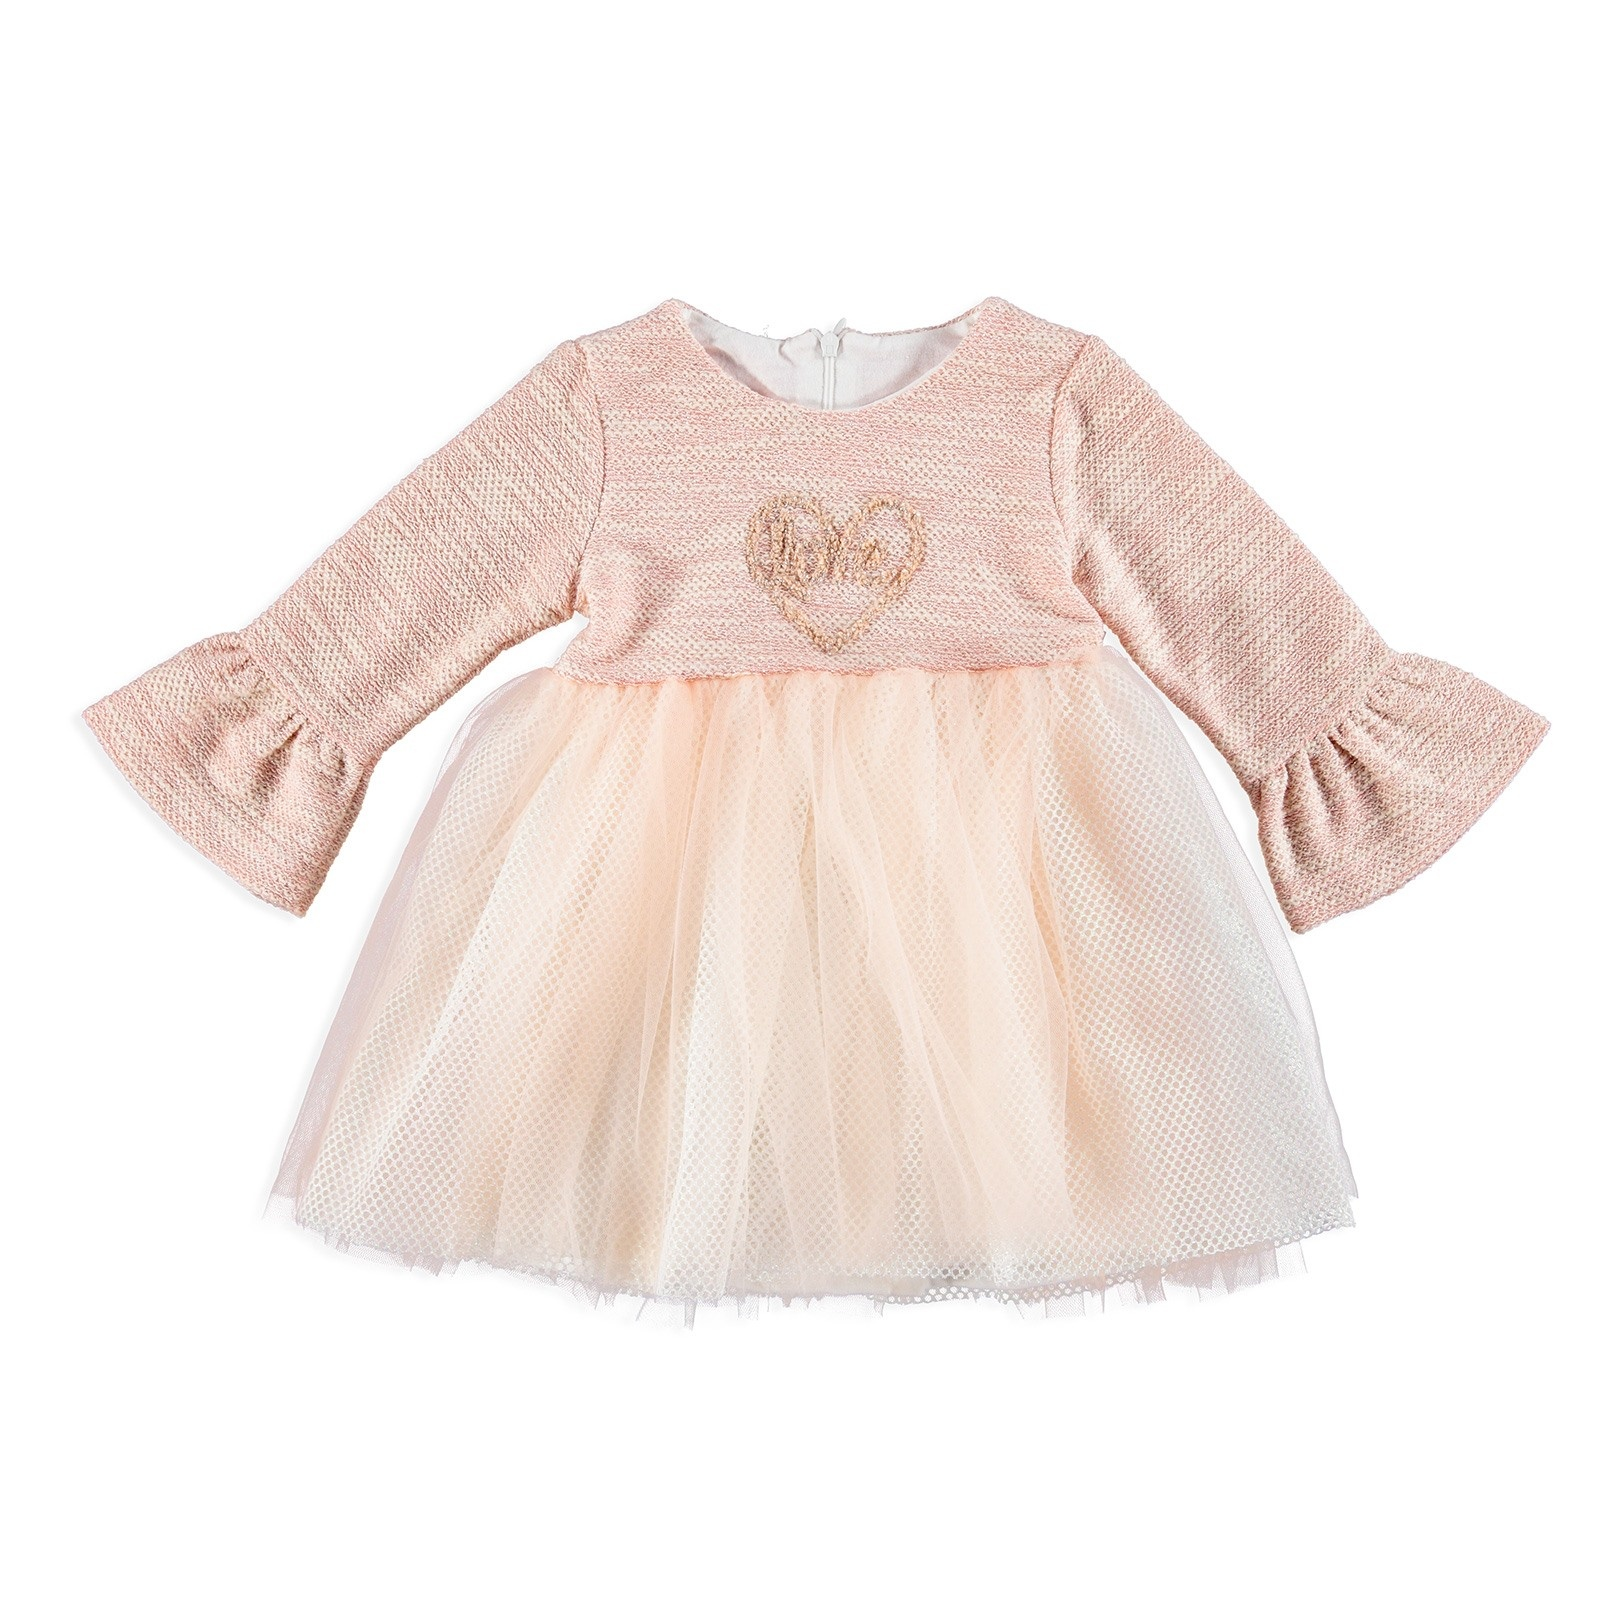 Ebebek Mymio Baby Girl Combed Lined Heart Embroidered Dress